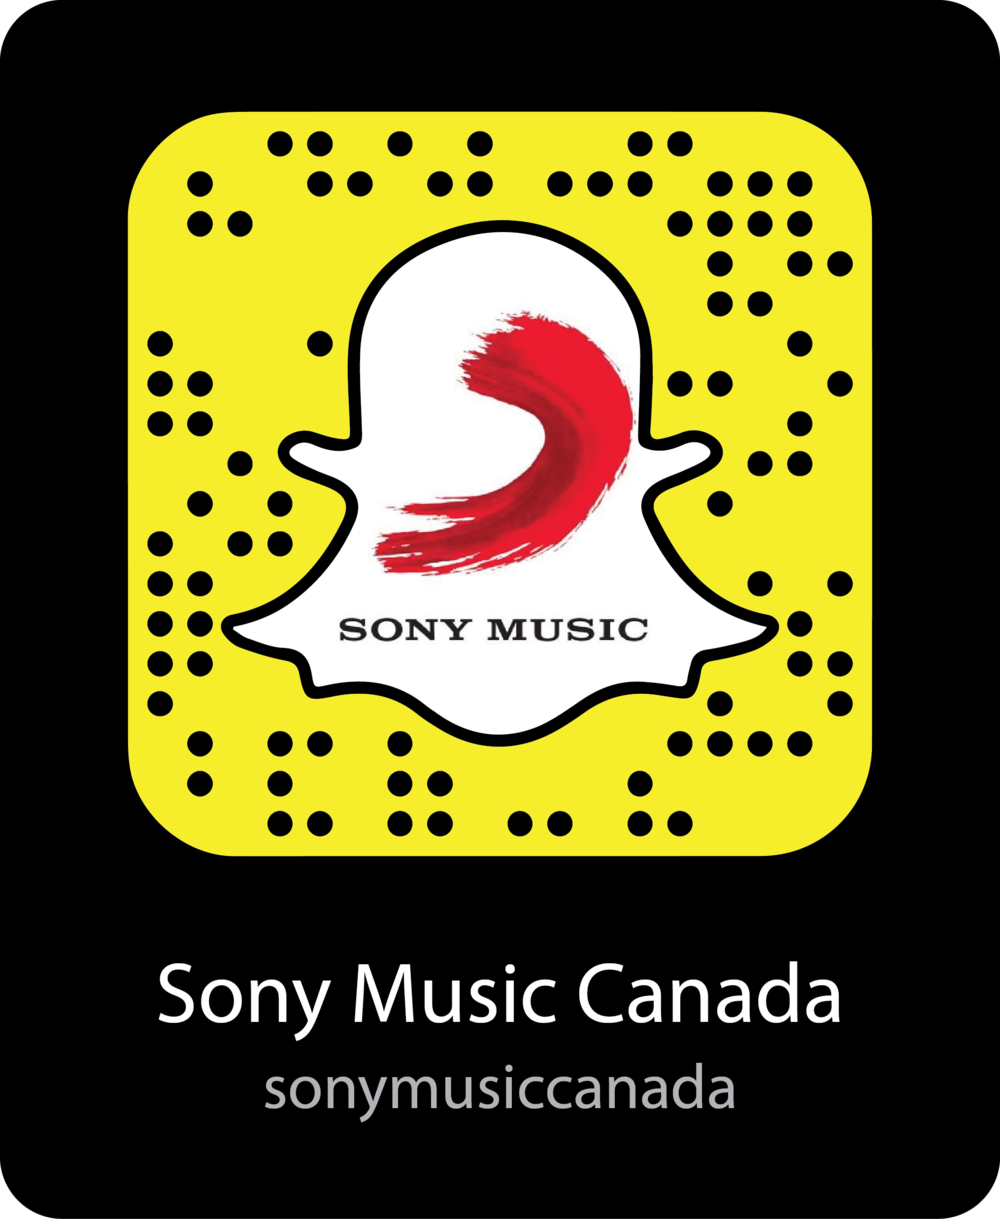 sonymusiccanada-snapchat-snapcode.png